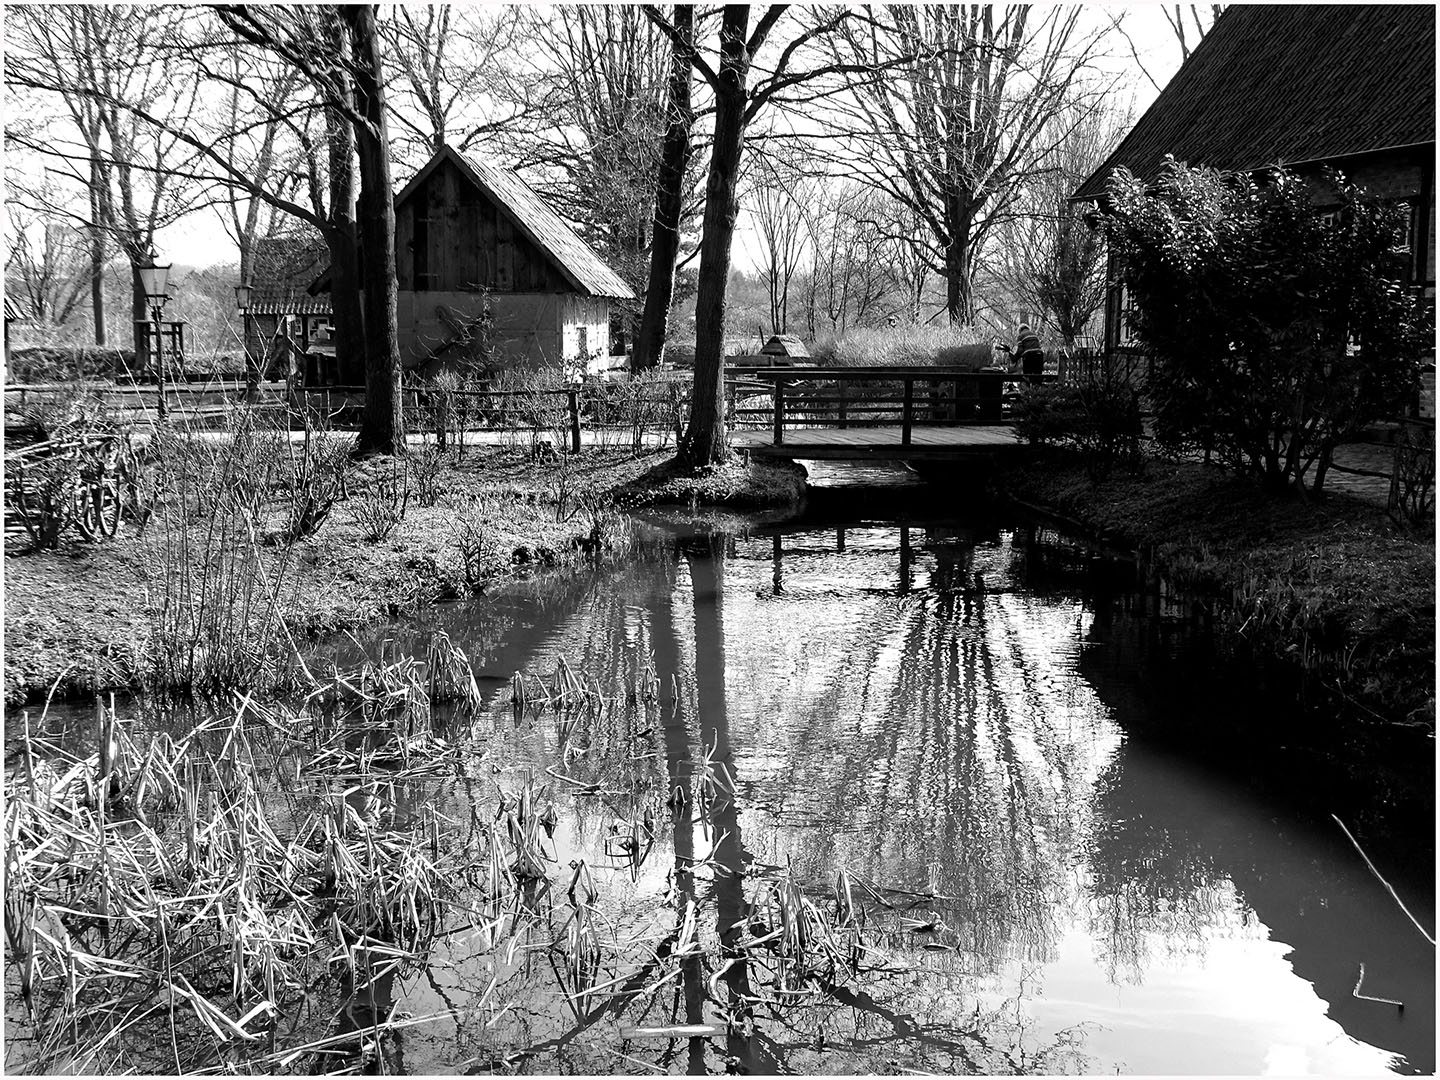 Little_old_Village_004_M17.7.89